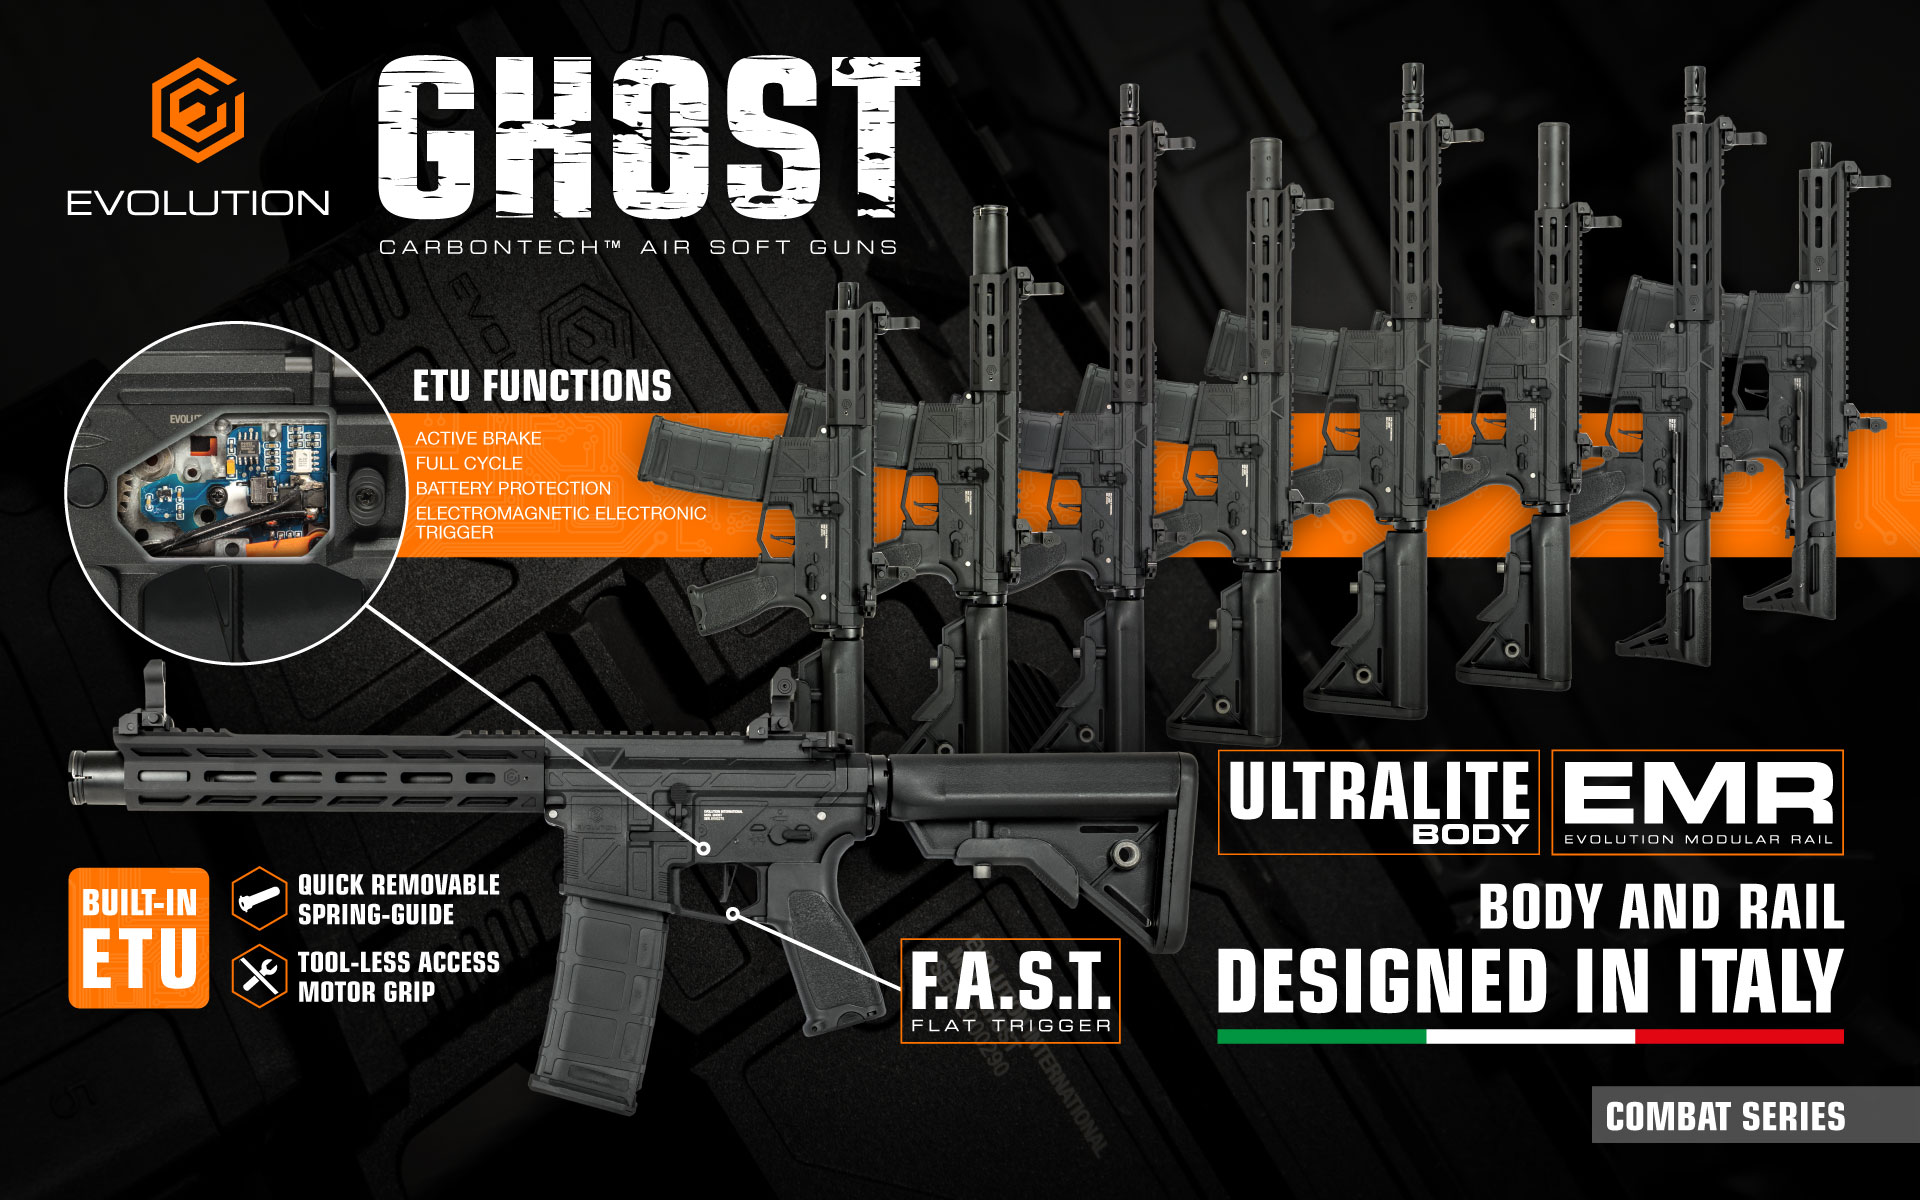 Evolution Ghost air soft in action